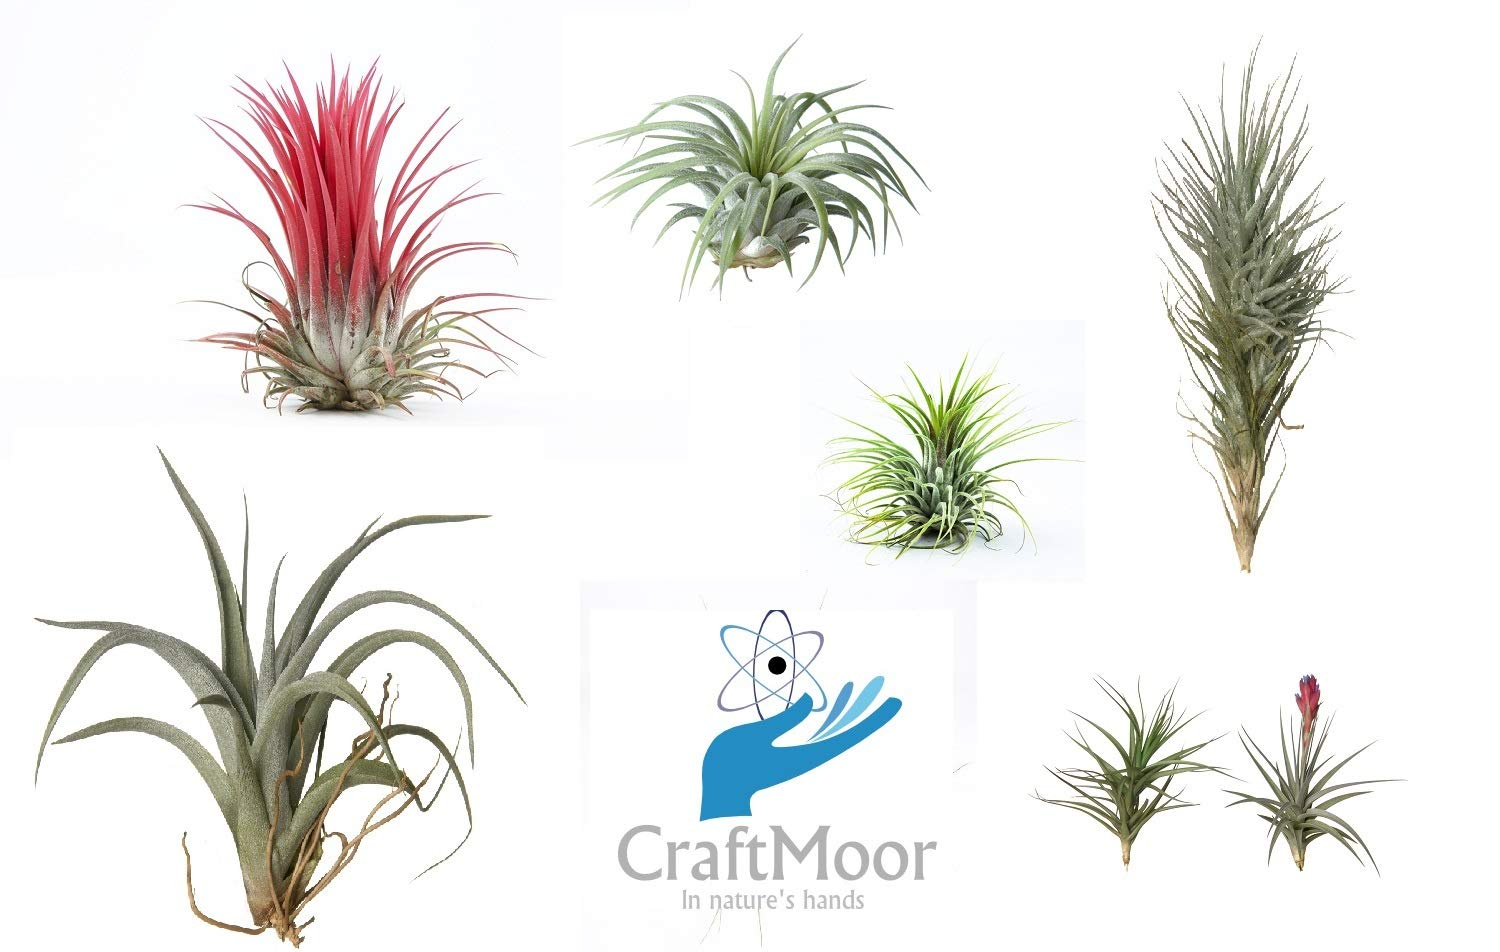 4X Craftmoor Tillandsia Air Plant Mix - Healthy, Strong, Fresh, Air Plants, Indoor Plants, Office Plant, Bathroom Plants, House Plants Craftmoor○